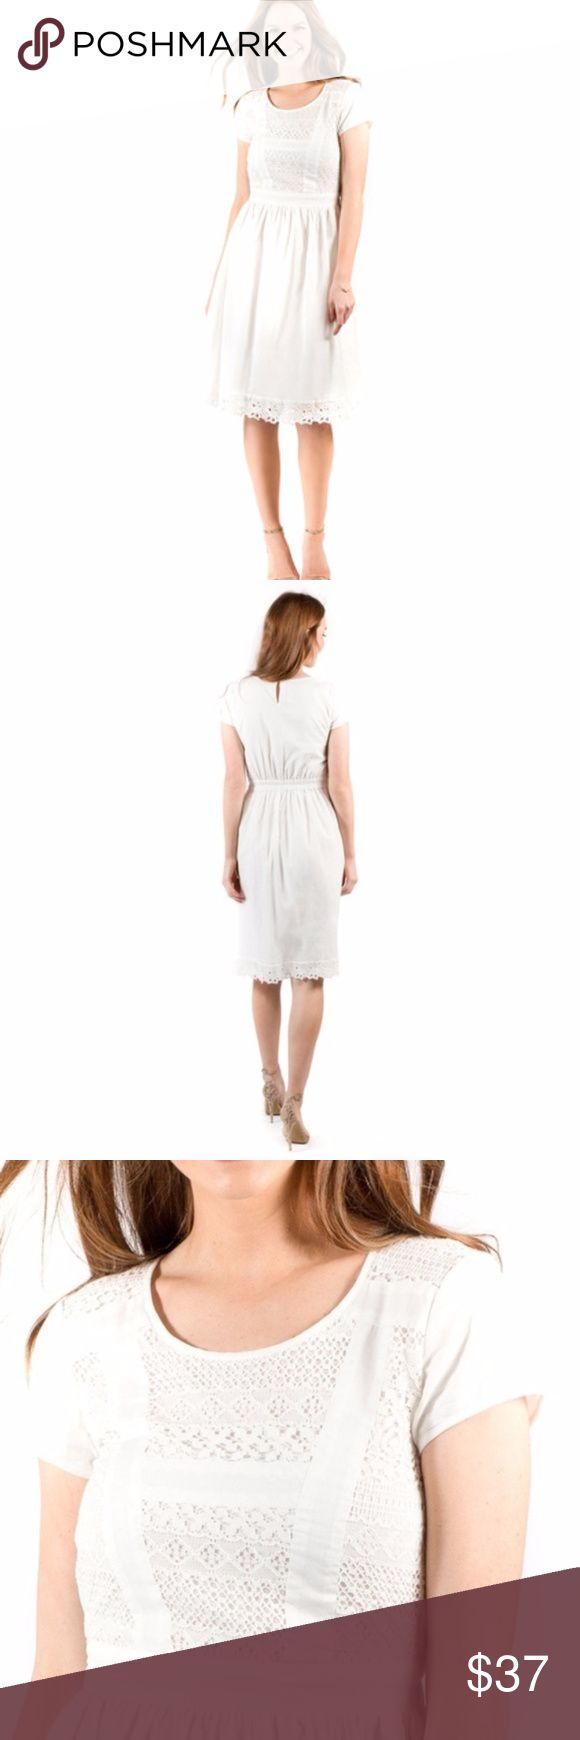 Downeast White Cotton Dress Like new, very cute fit and flare dress with an elastic waistband in the back for a comfortable fit. Downeast Dresses Midi